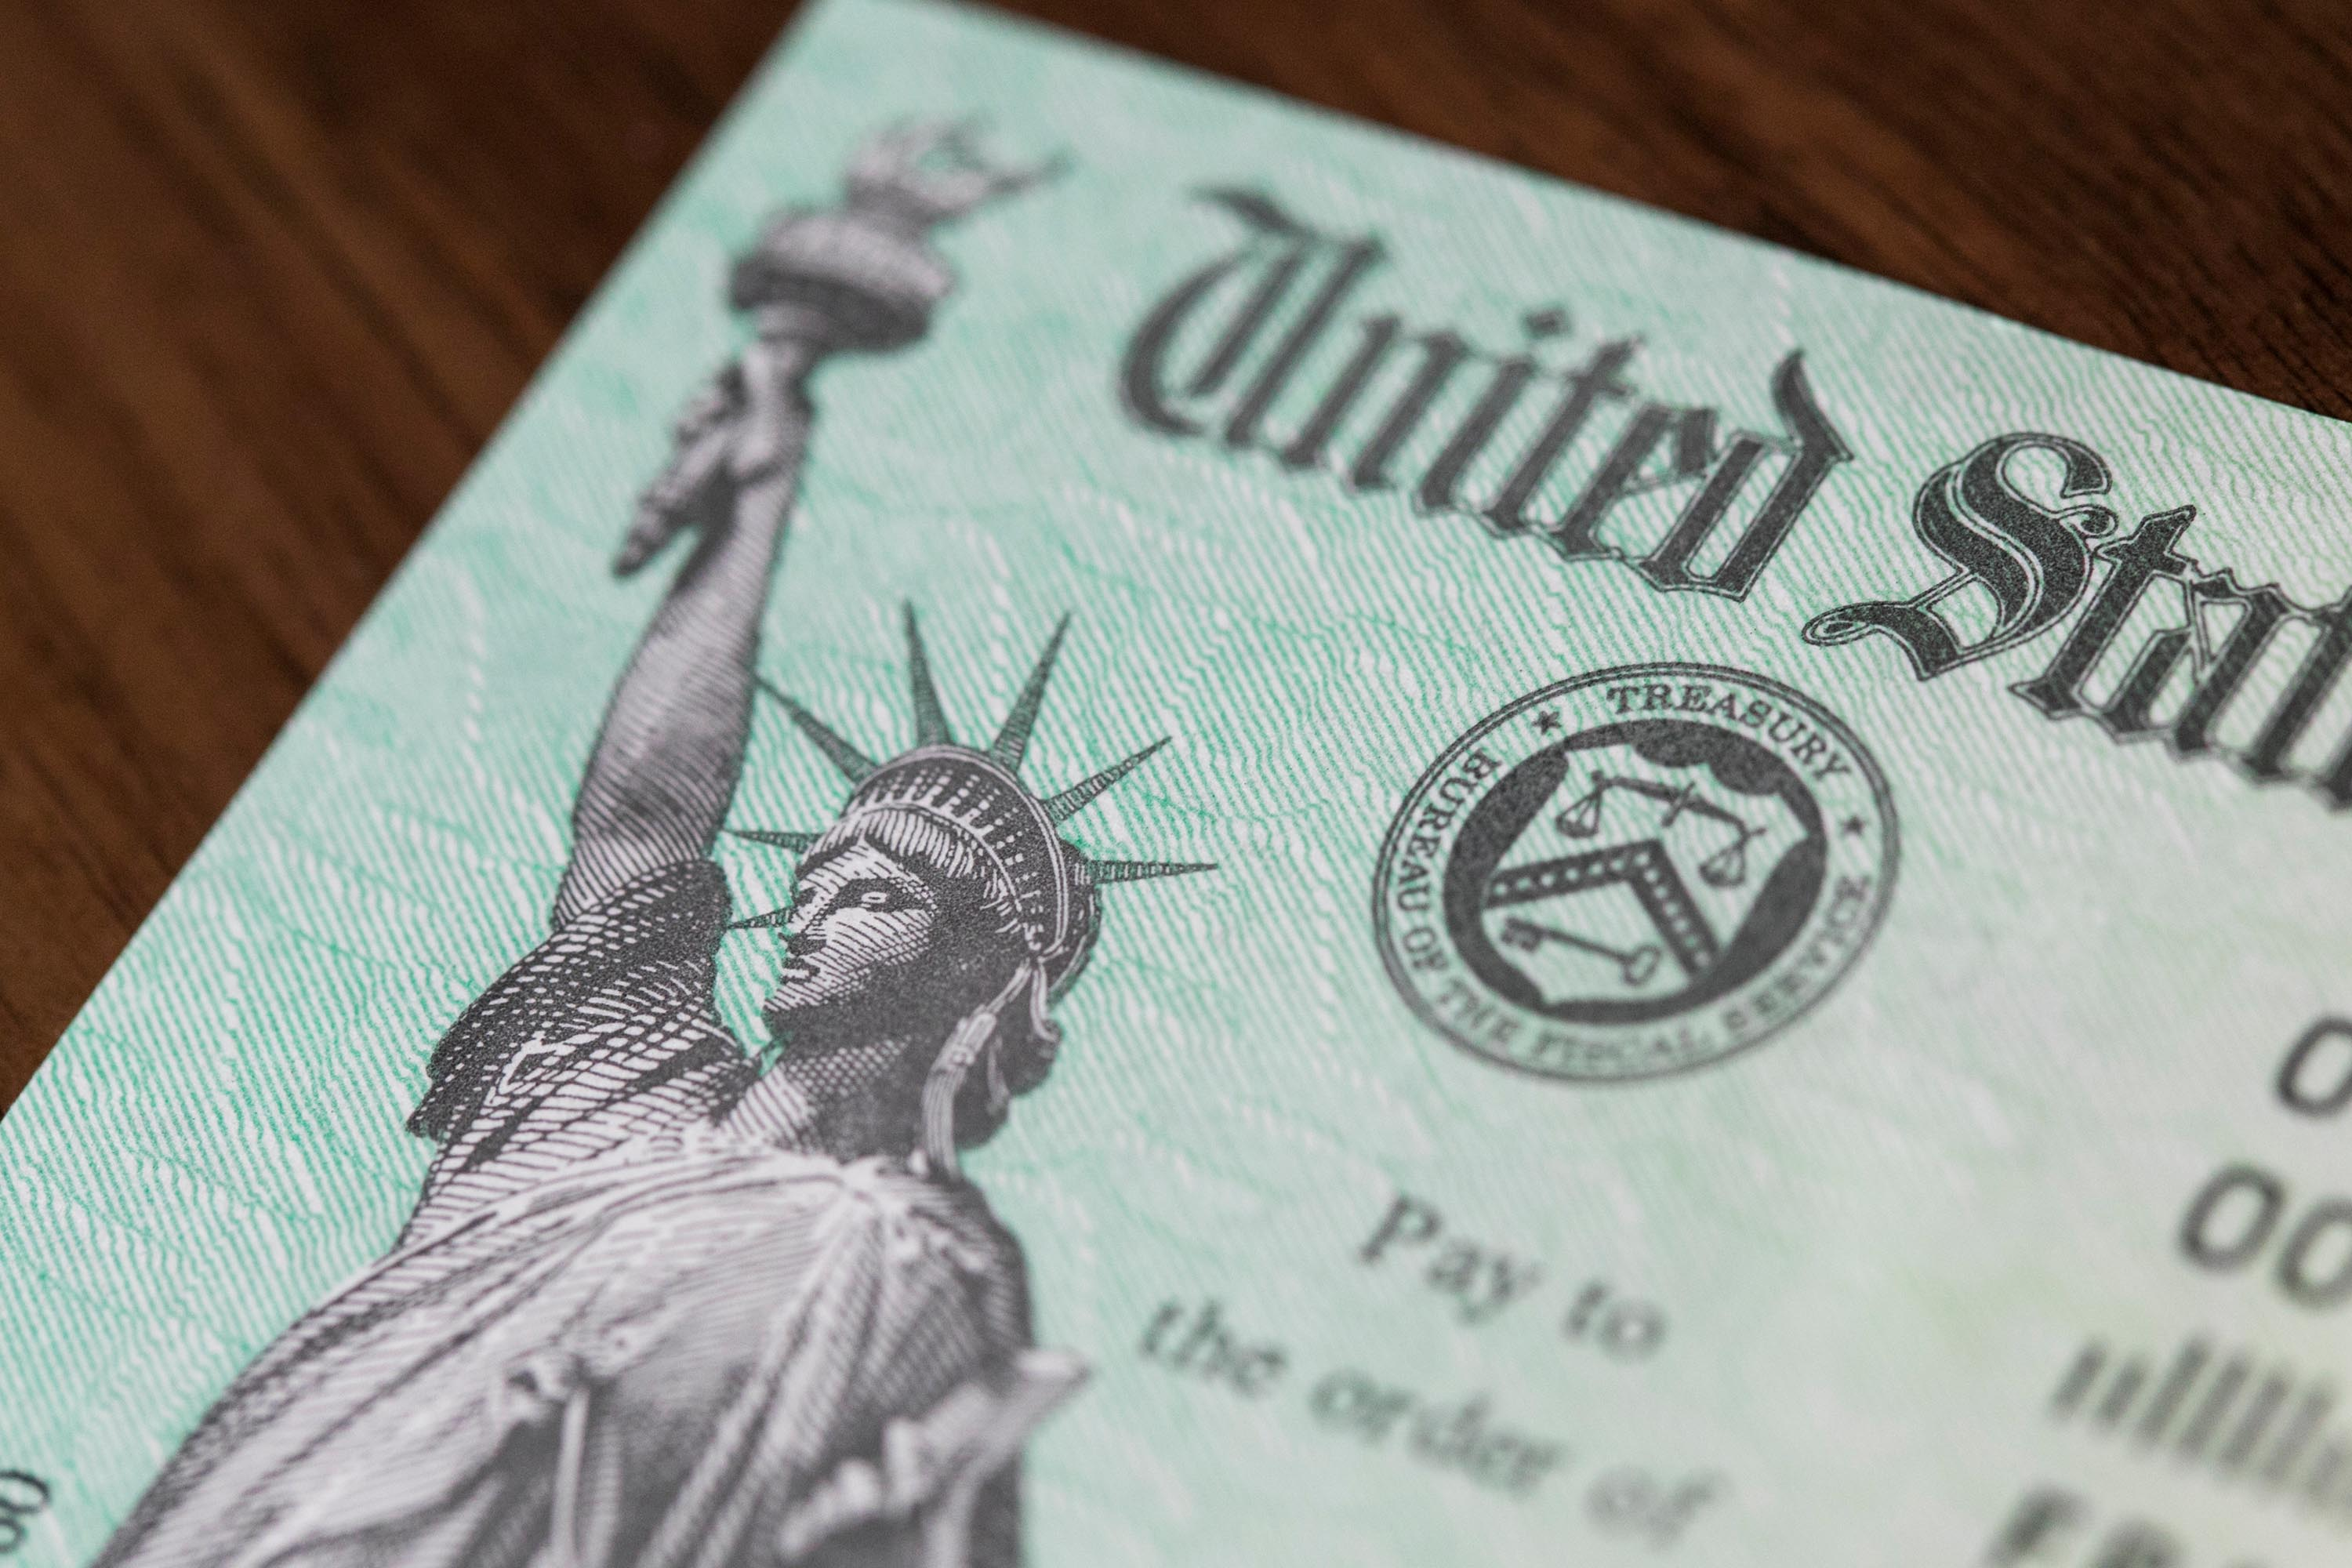 Stimulus checks won't be taxed, but unemployment benefits will be